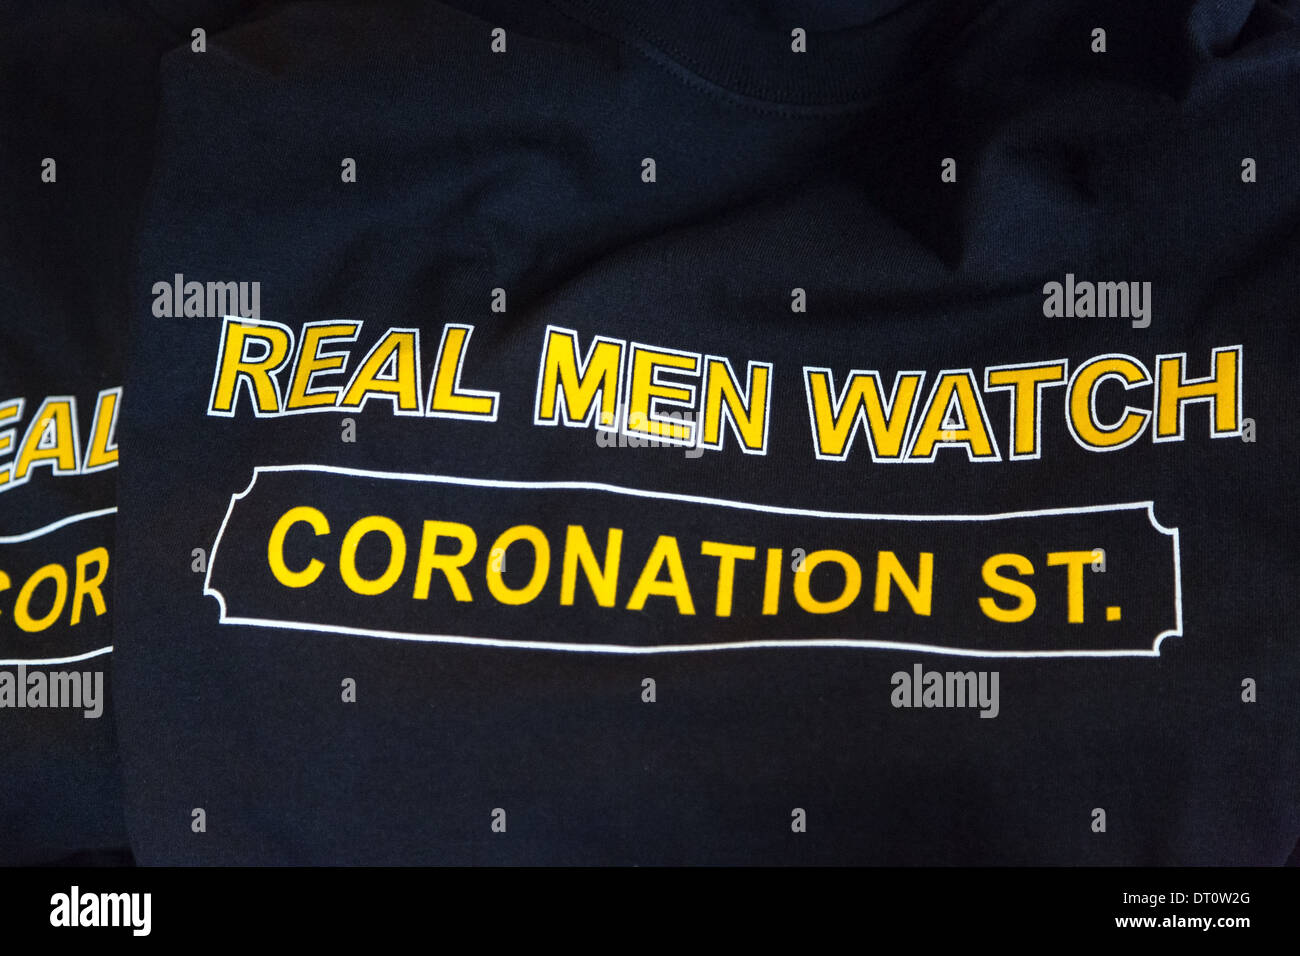 Tee-shirts with the words Real Men Watch Coronation Street printed on them - Stock Image